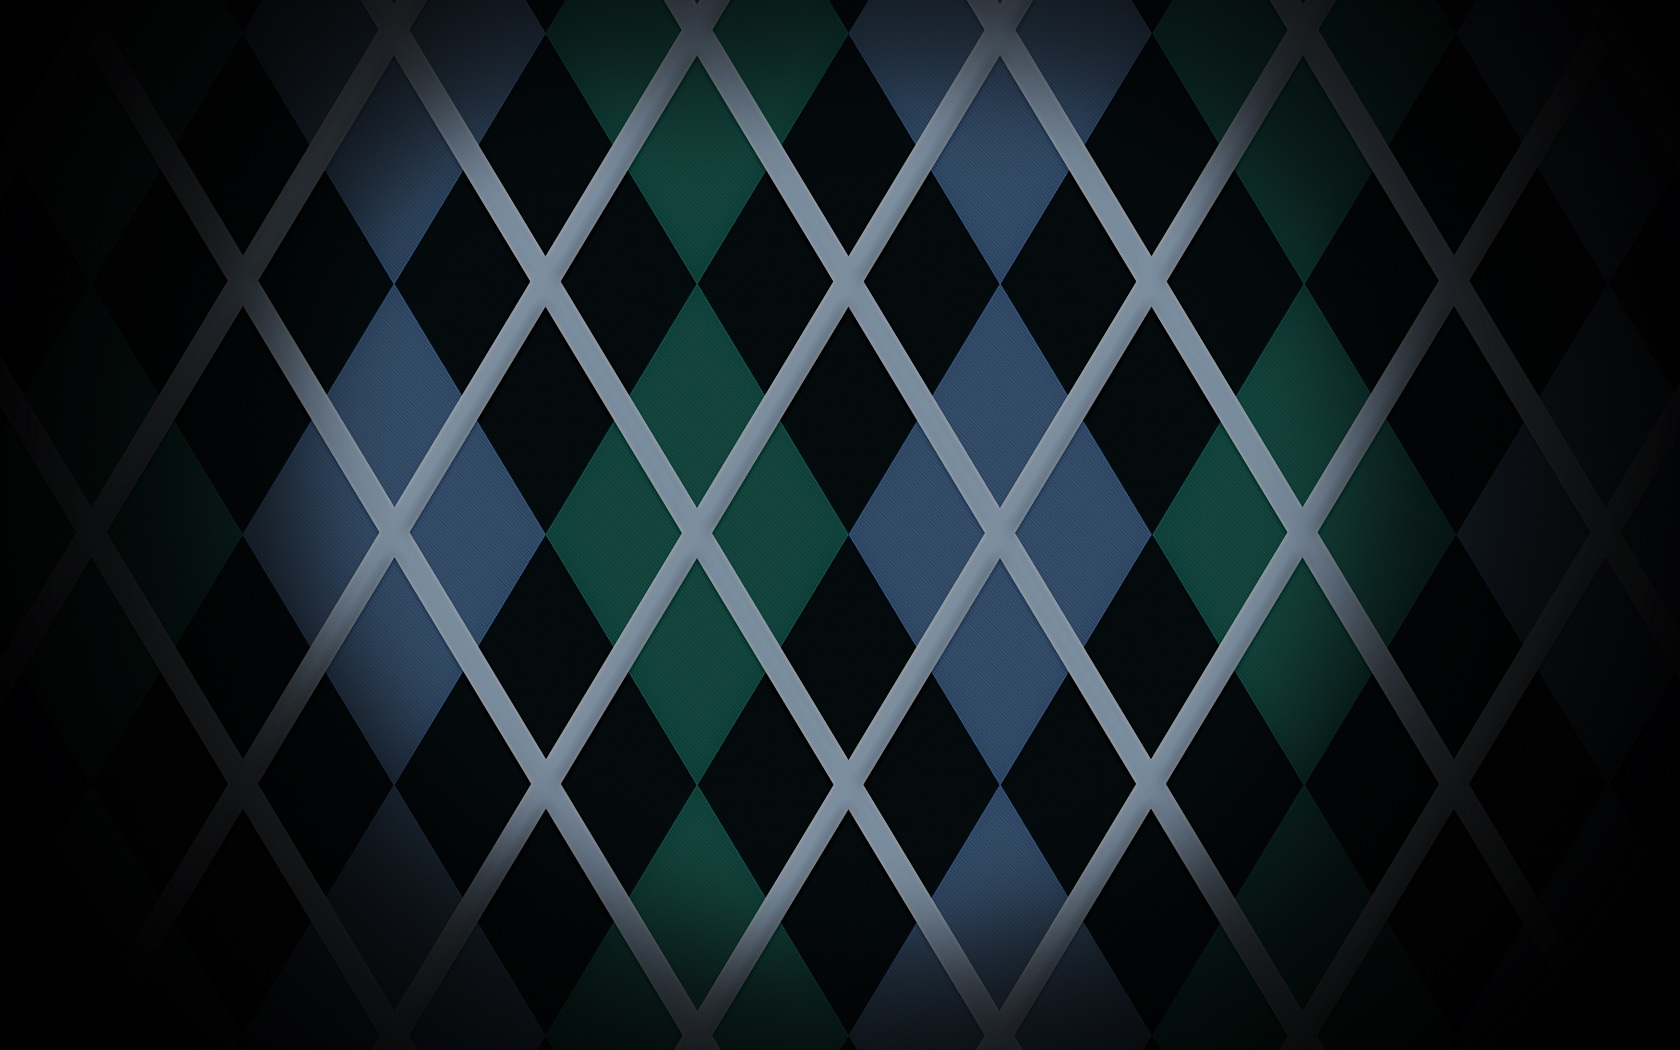 plaid teal mobile phone wallpaper - photo #43